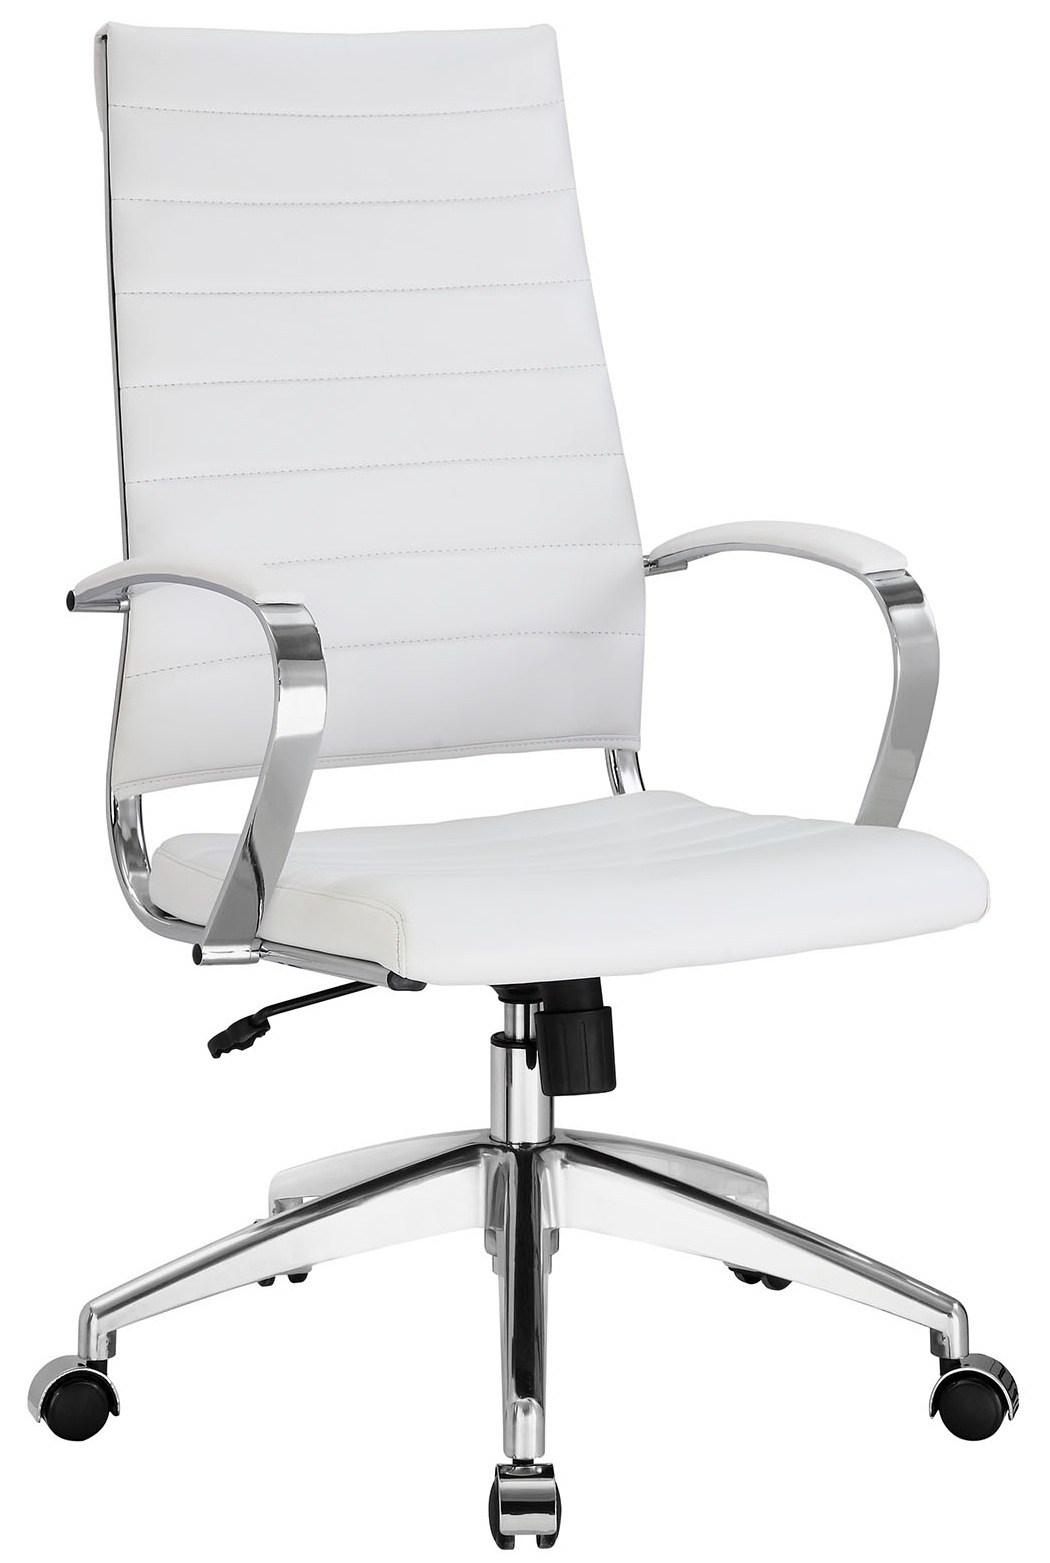 aria-hb-office-chair-white.jpg